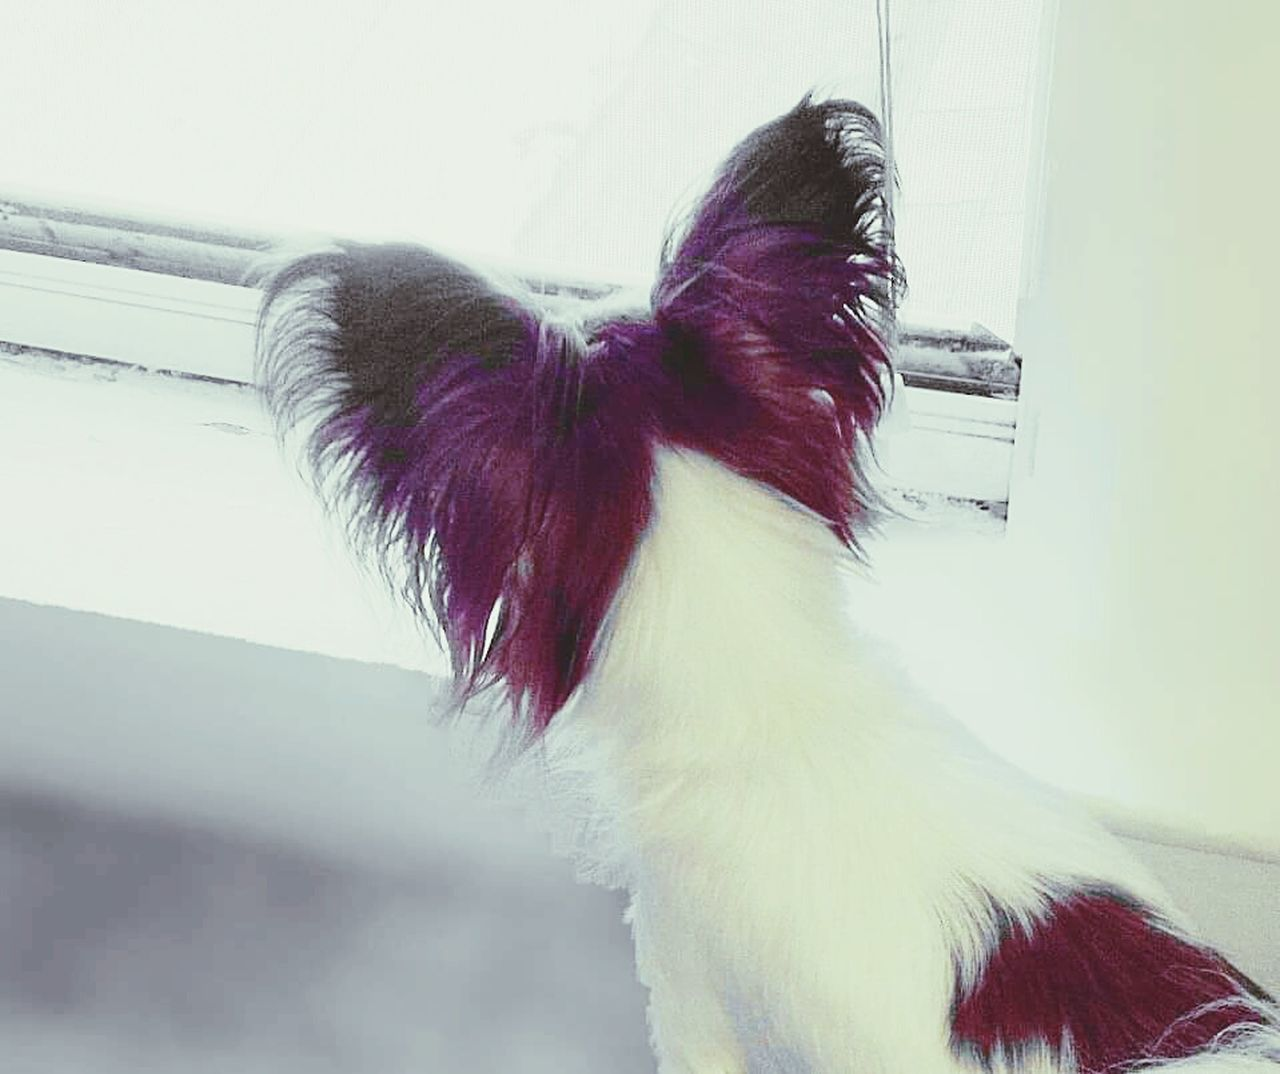 One Animal Domestic Animals Pets Close-up Indoors  Animal Themes My Photography EyeEm Best Shots Eyeem Photography EyeEm Animal Lover Papillondog Papillion, Dog, Cute, Precious, Furry Day Dogoftheday Dogslife Dog Of The Day Dog Photography Dogs_of_instagram EyeEm The Best Shots Ilovemydog Eyeemphoto EyeEmbestshots Waiting For You Papillon Adapted To The City